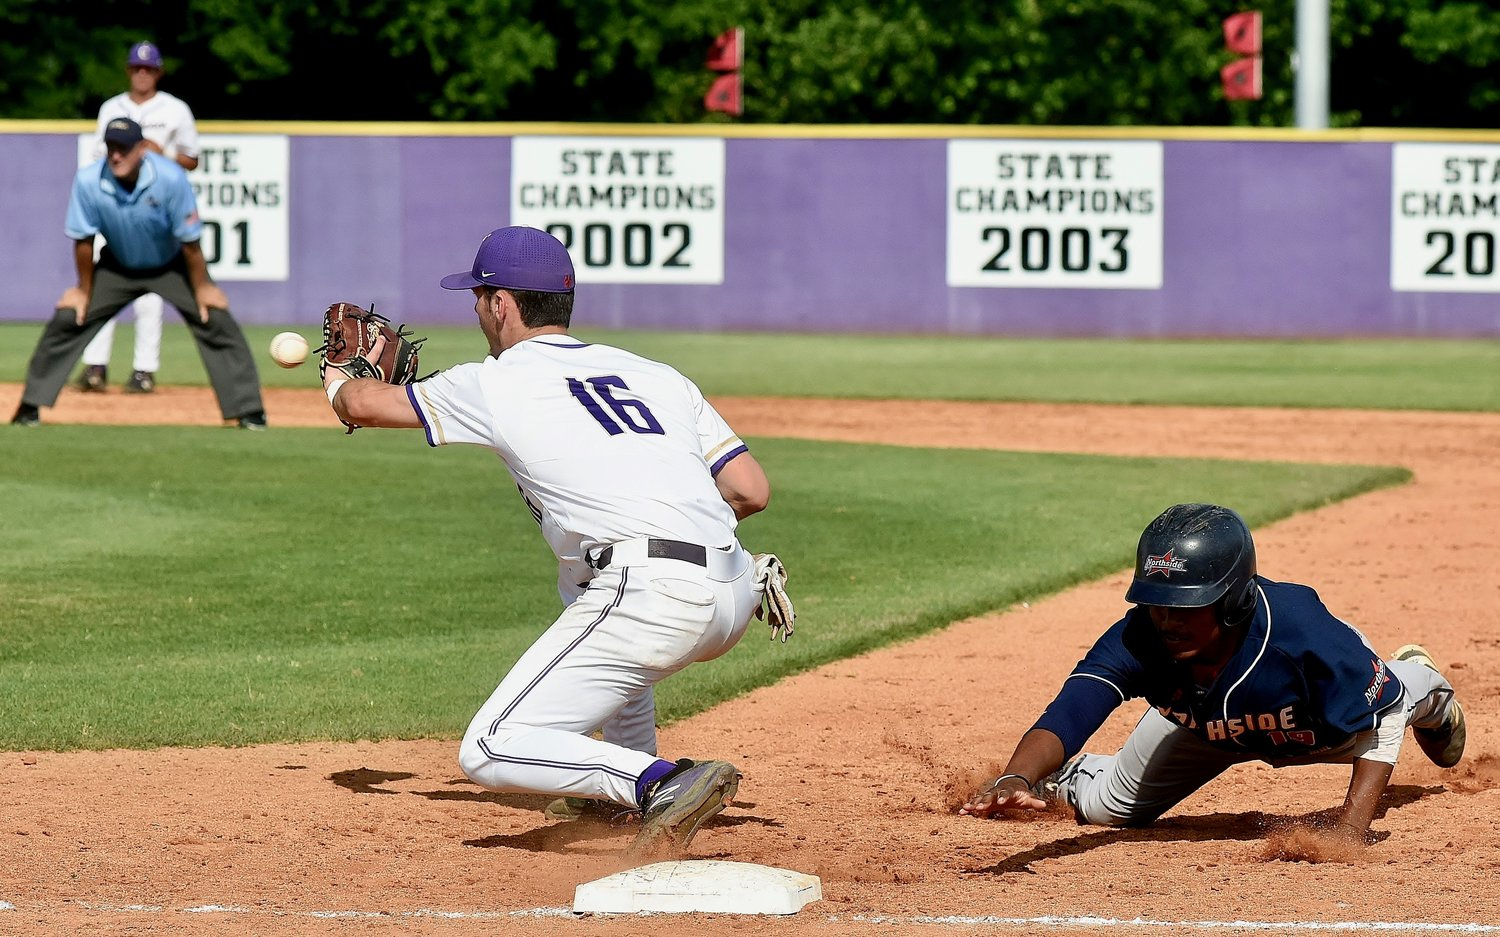 Cartersville senior J.P. Martin receives a pickoff throw at first base during Game 1 of a Class 4A state quarterfinal series Wednesday at Richard Bell Field.